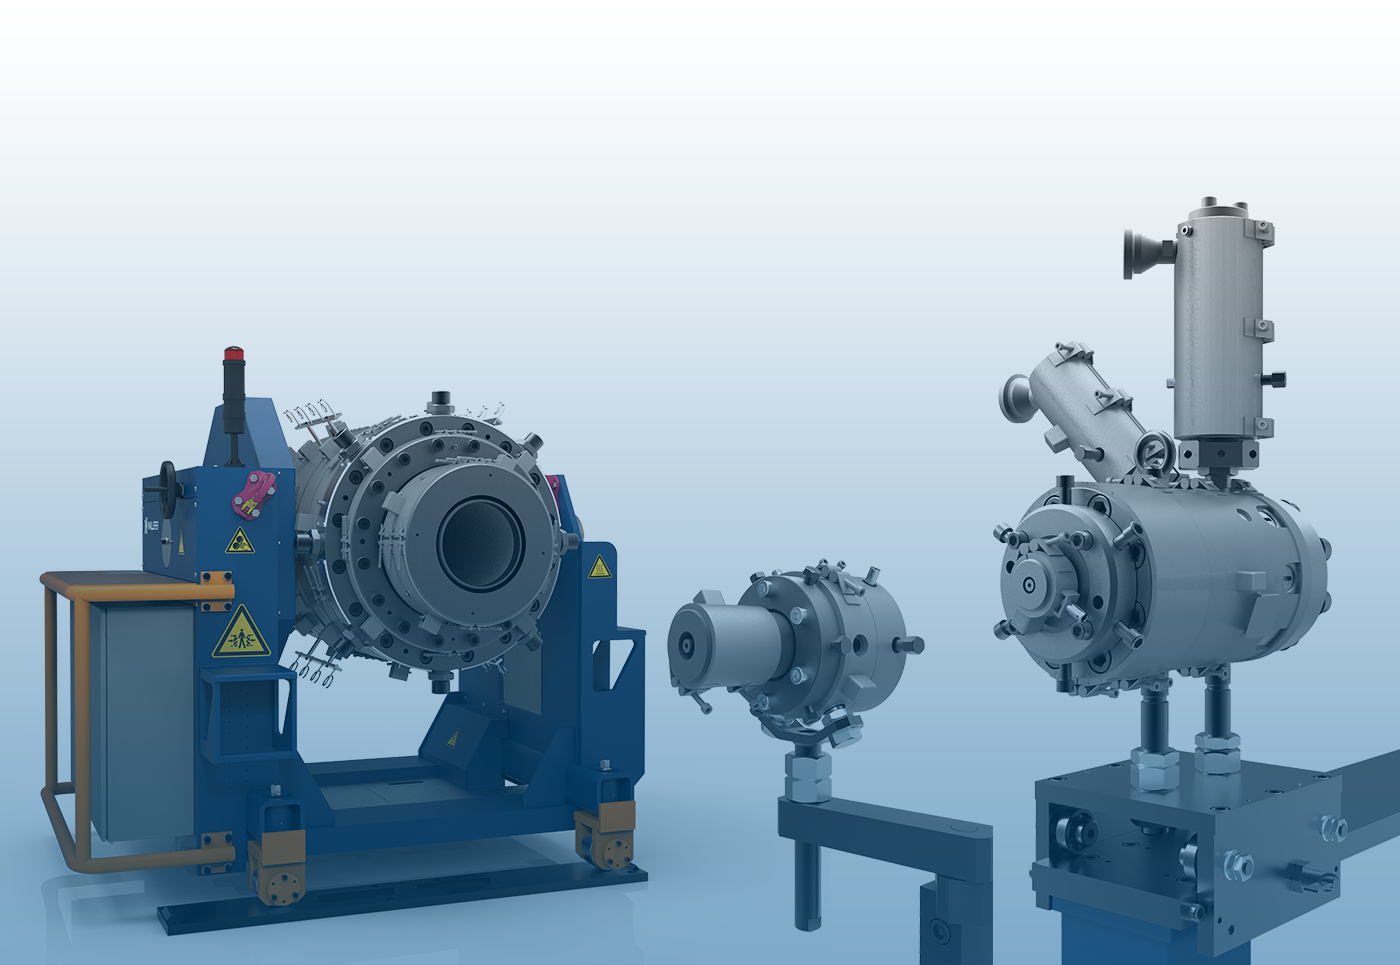 VLCH 305/400, TL 28 and ECH 8/24 extrusion heads from the family of Maillefer components (very large crosshead, longitudinal mono-layer head and multi-layer crosshead) (Source: Davis-Standard)